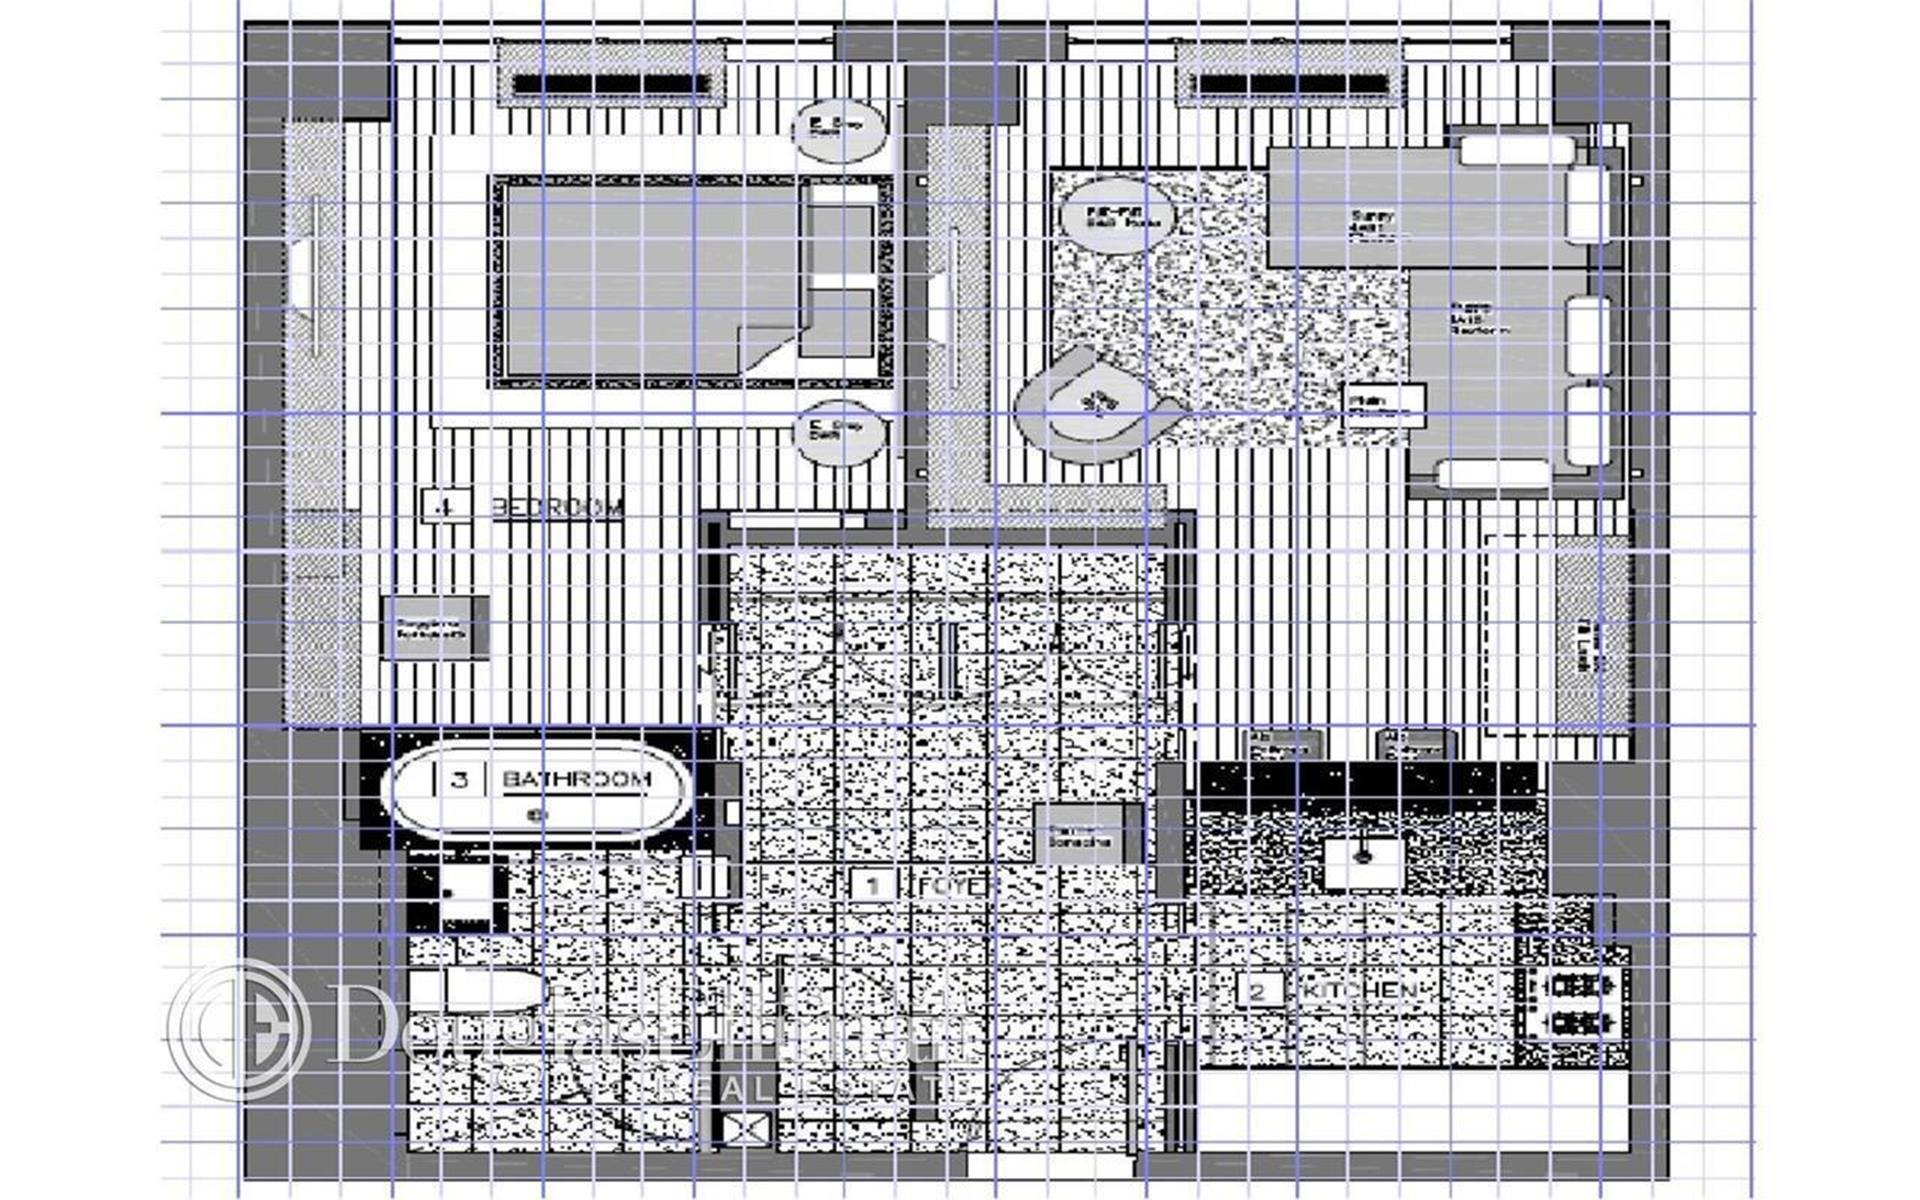 Floor plan of Zeckendorf Towers, 1 Irving Pl, G19D - Gramercy - Union Square, New York